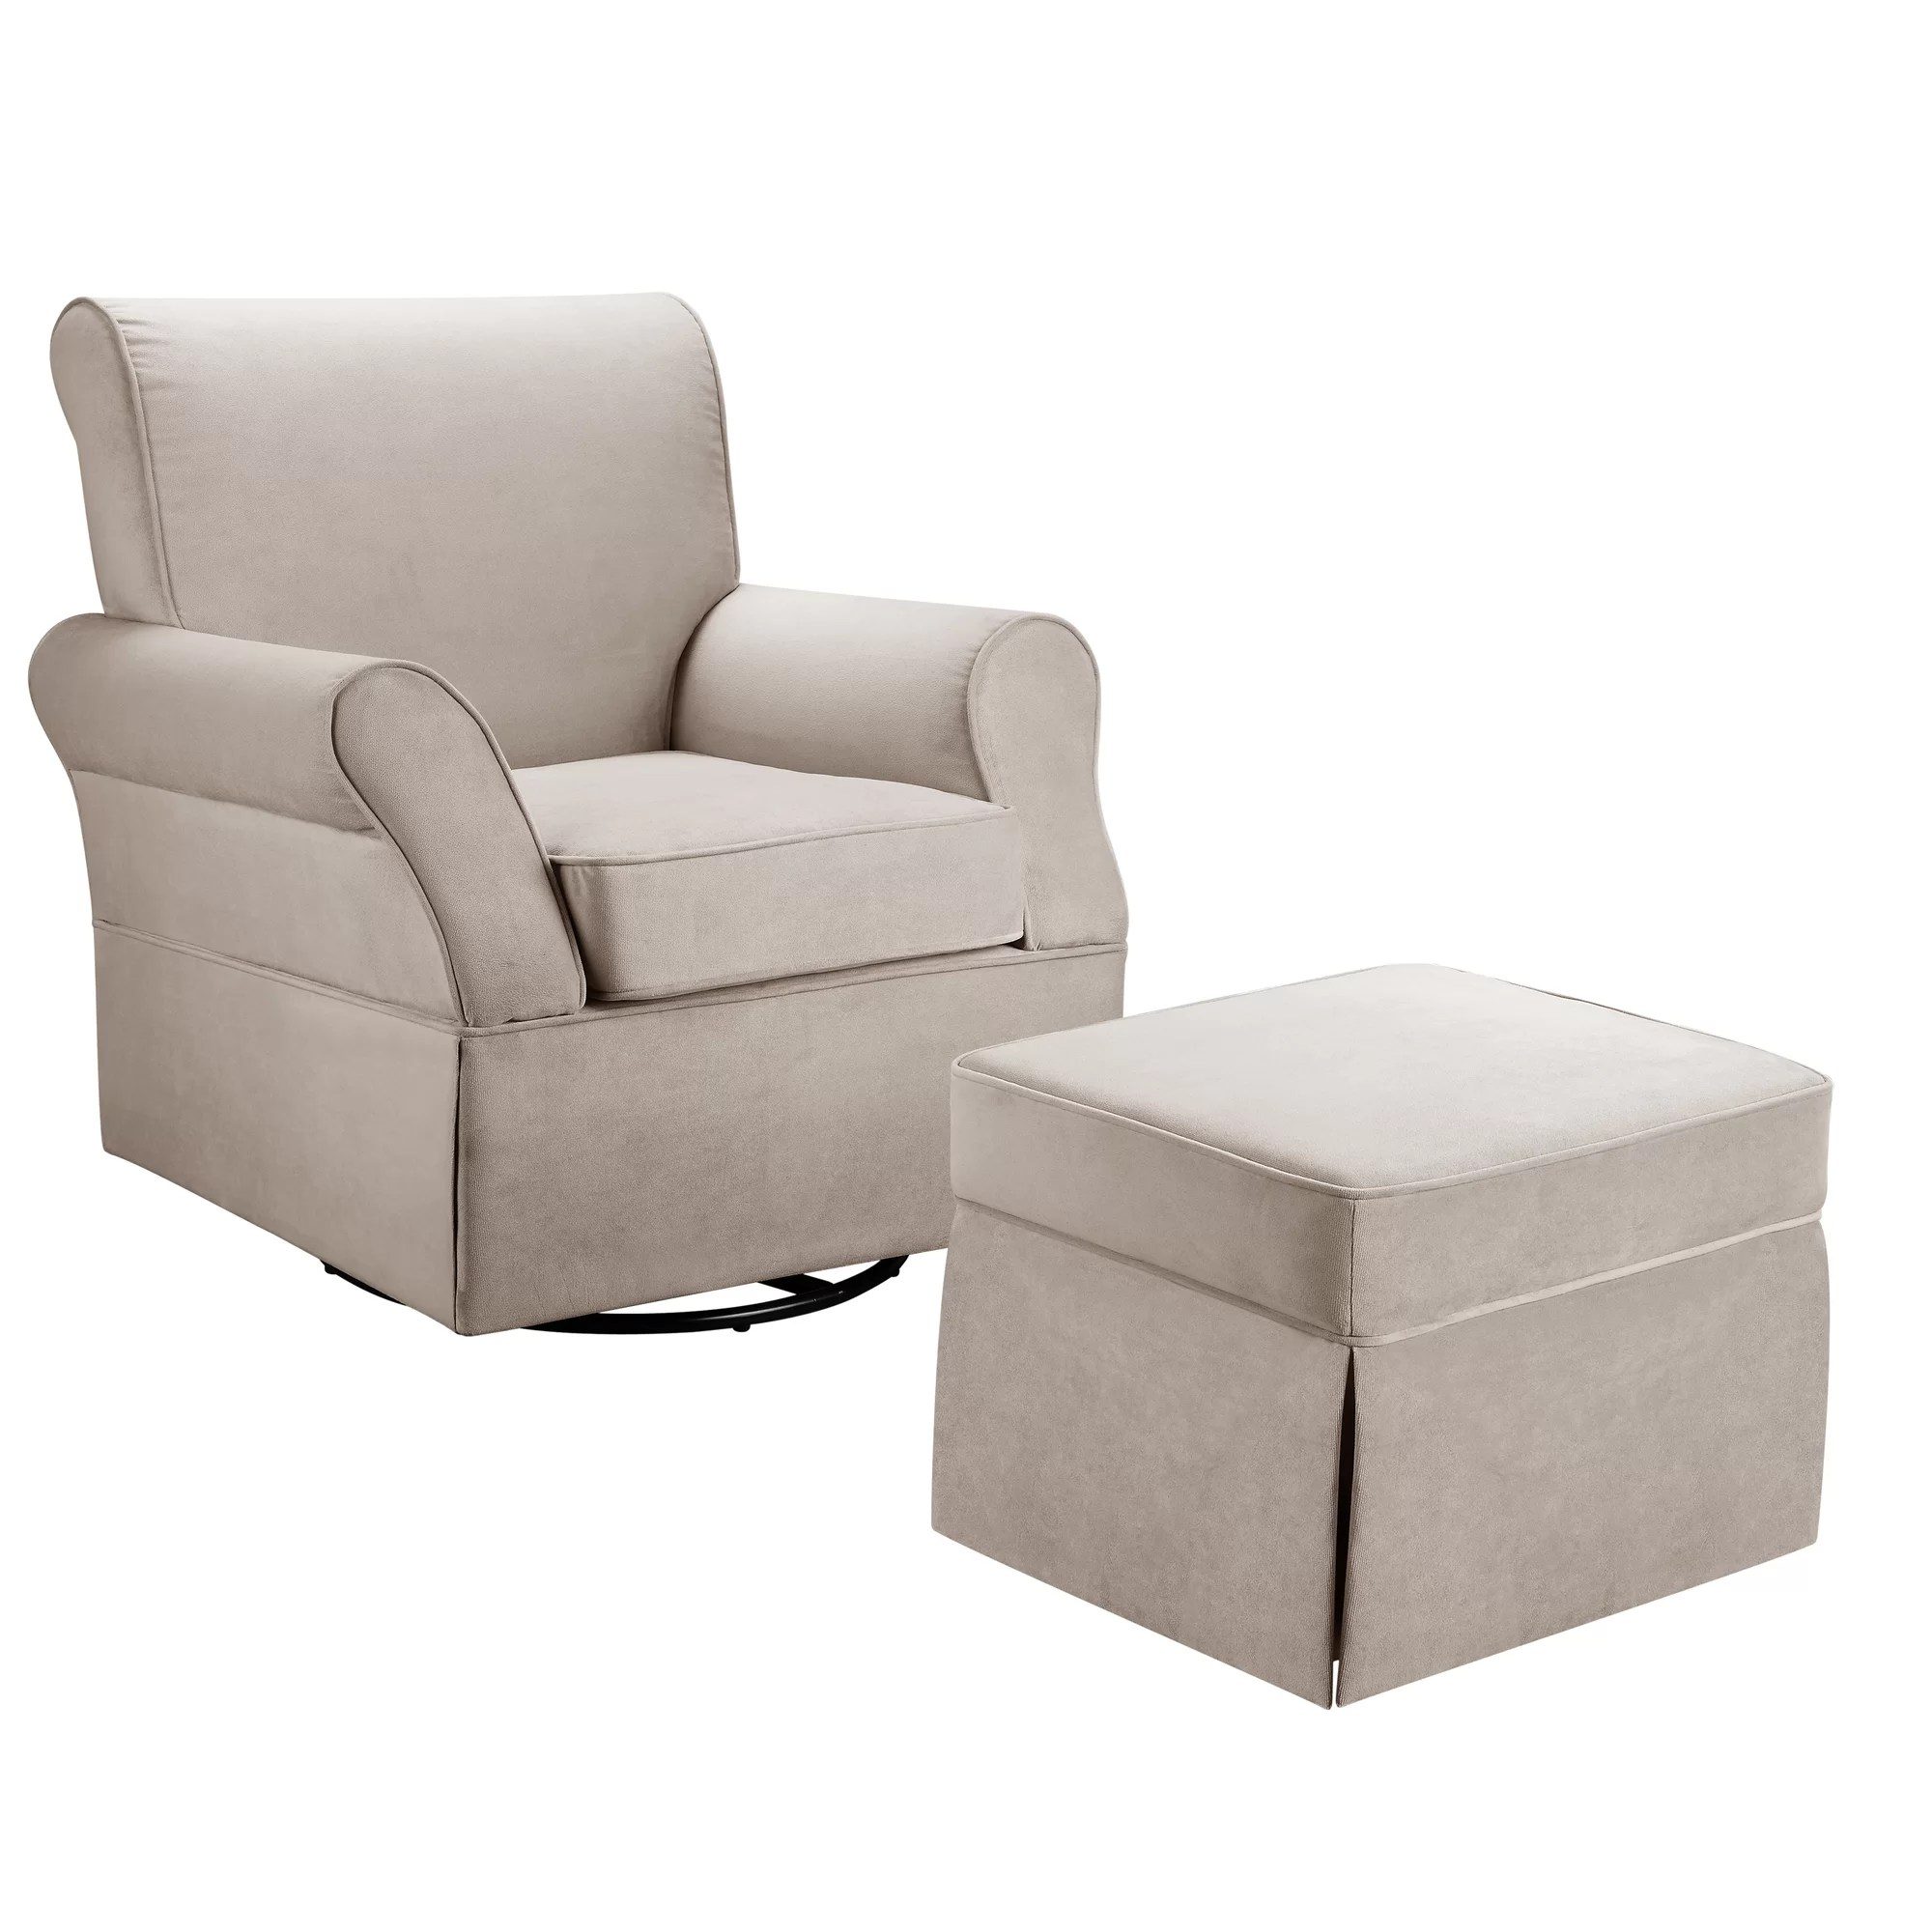 Glider Chair And Ottoman Dorel Living Kelcie Swivel Glider Chair And Ottoman Set Ebay